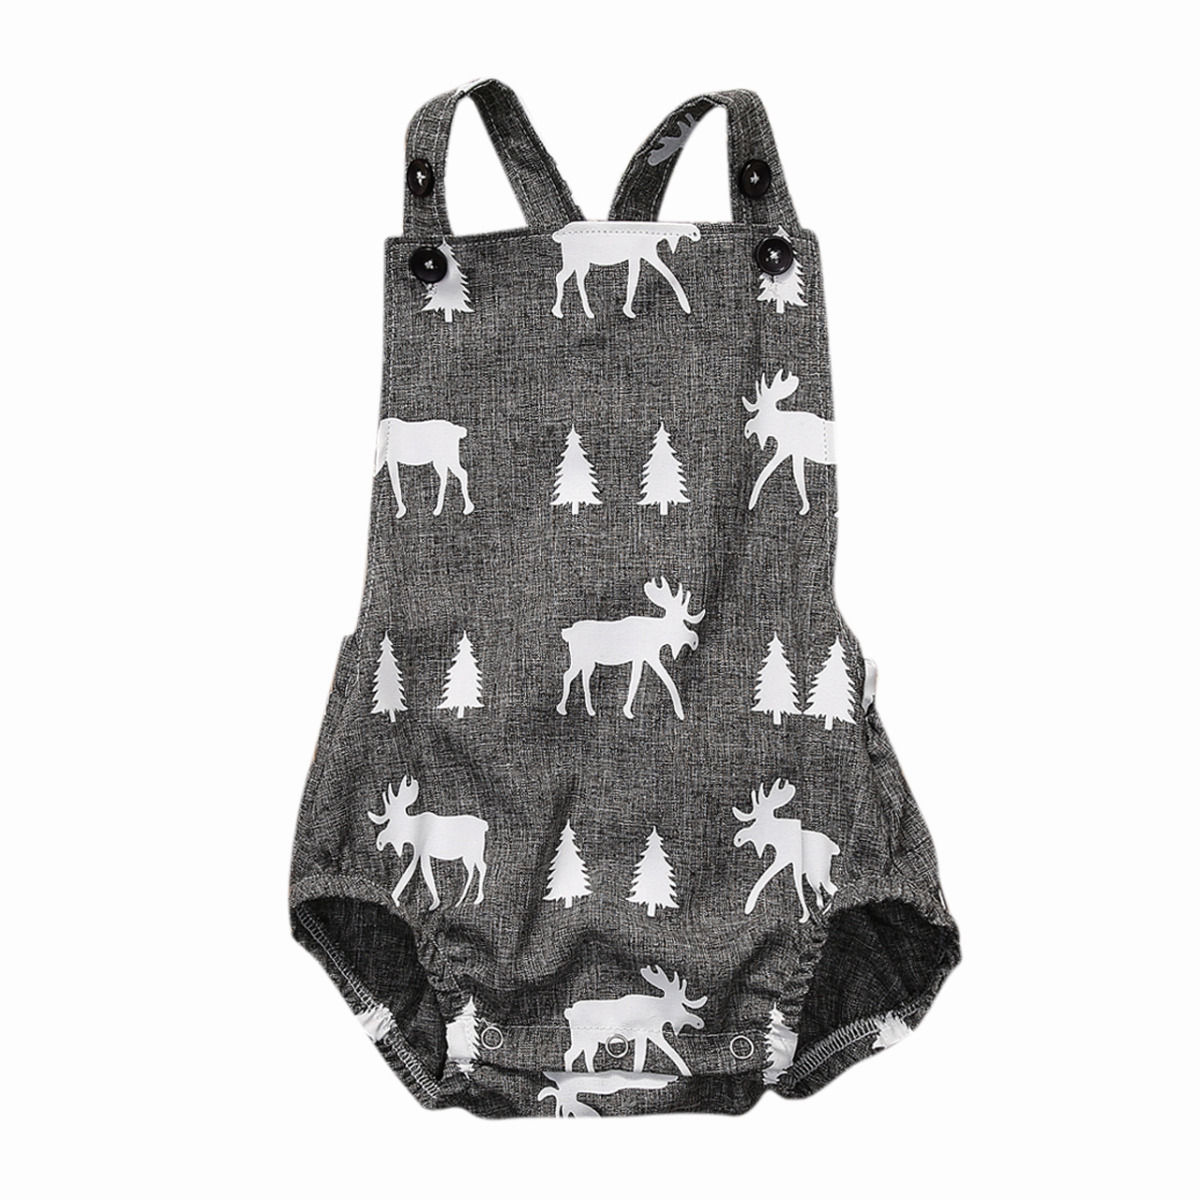 Cute Baby Romper Newborn Baby Boy Girl Fawn Clothes Sleeveless Deer Playsuit Romper Jumpsuit Outfit Sunsuit 0-2Y футболка с полной запечаткой для мальчиков printio мишка на полянке